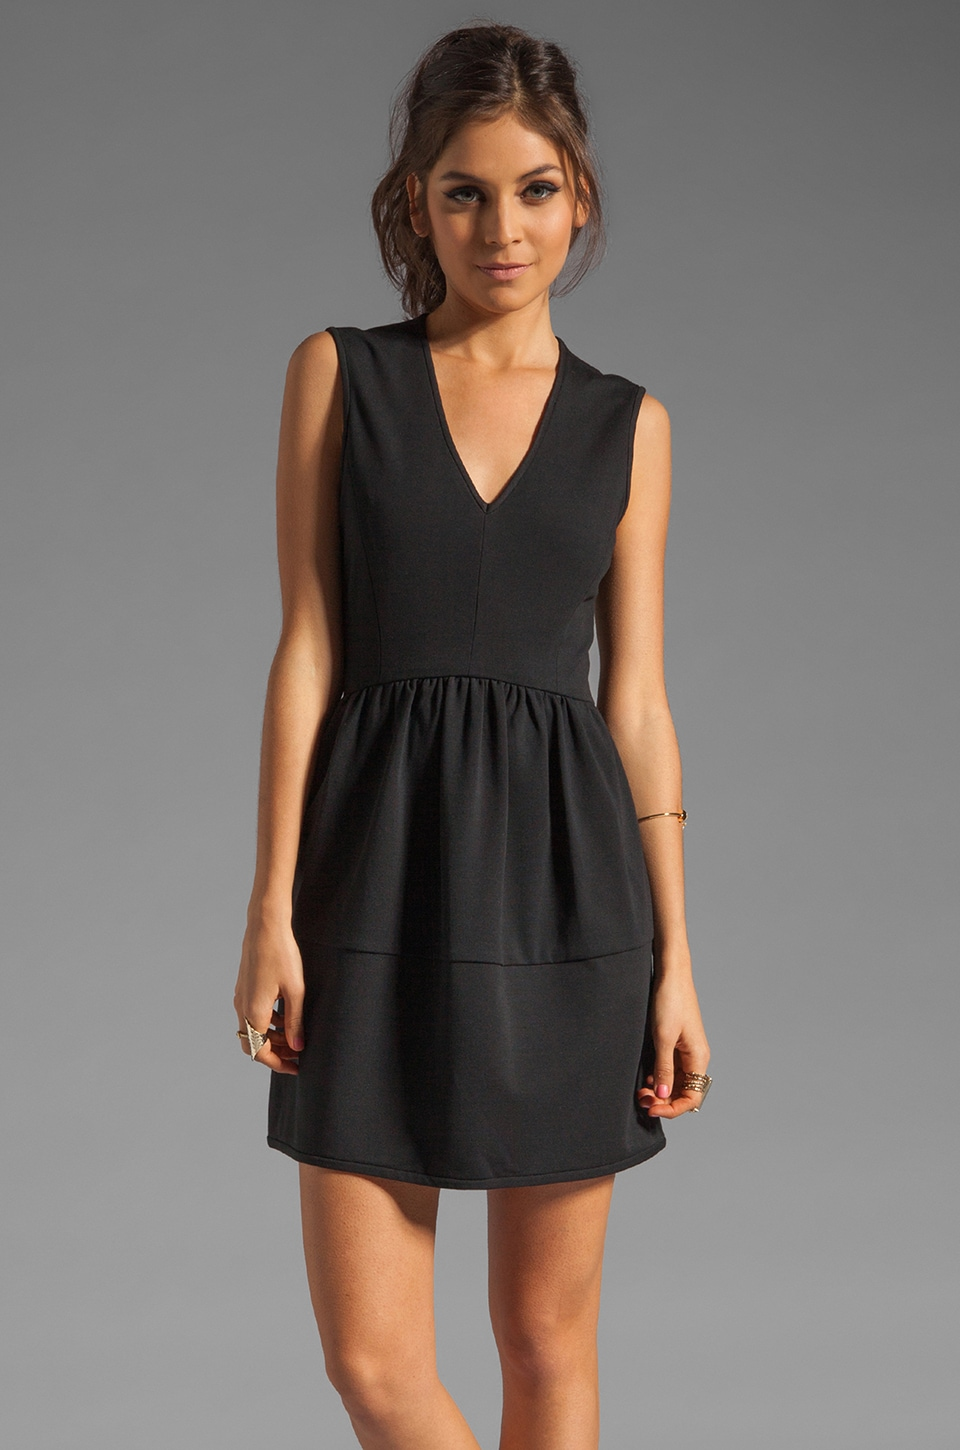 Tibi Ponte V-Neck Dress in Black